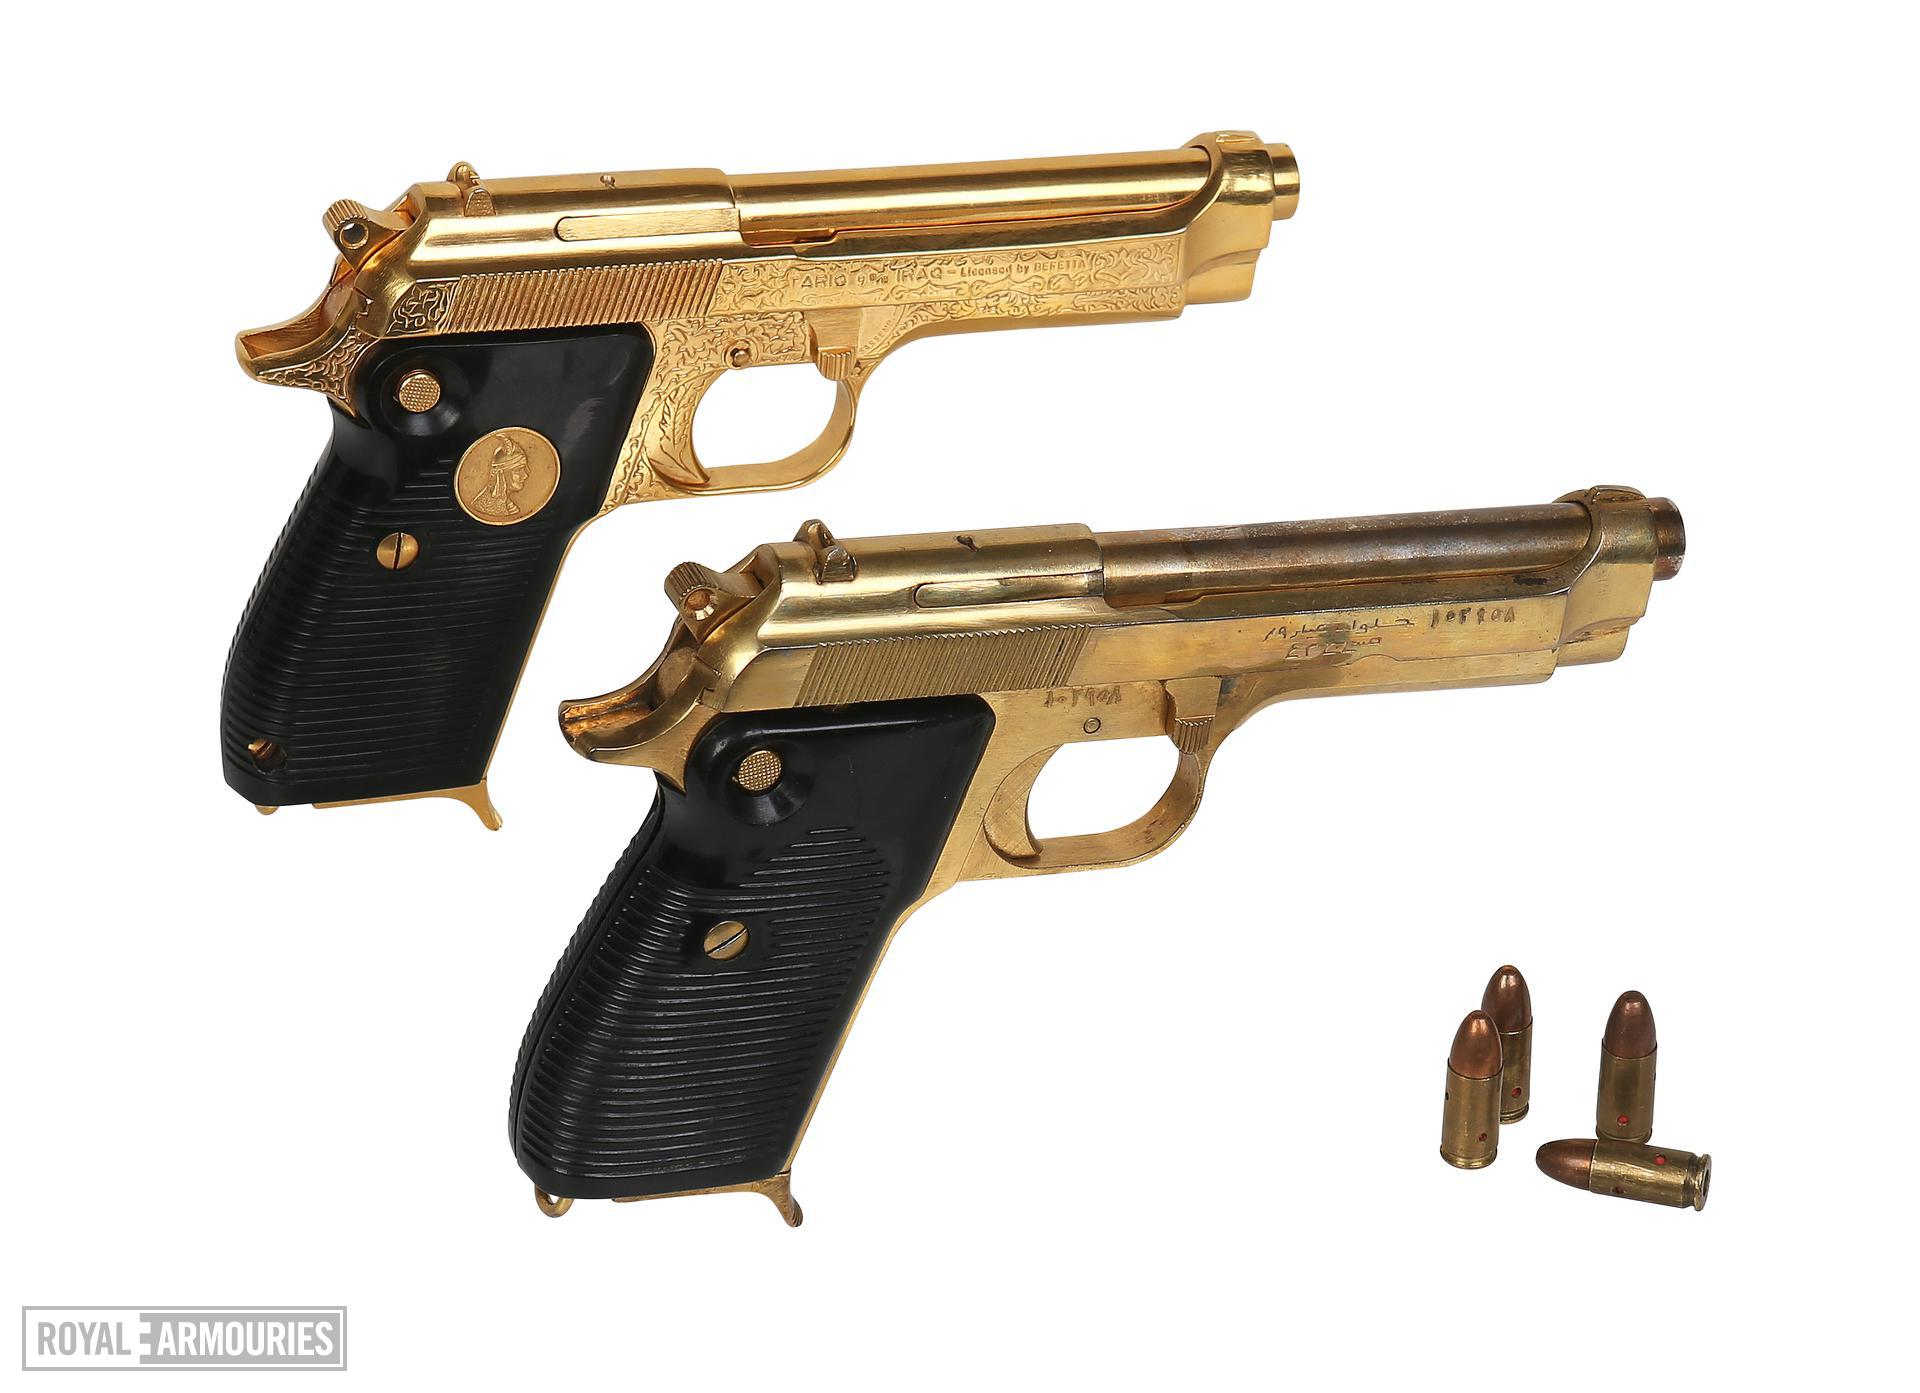 Gold copy of the Beretta 951 Brigadier alongside Gold plated Walther Model PP